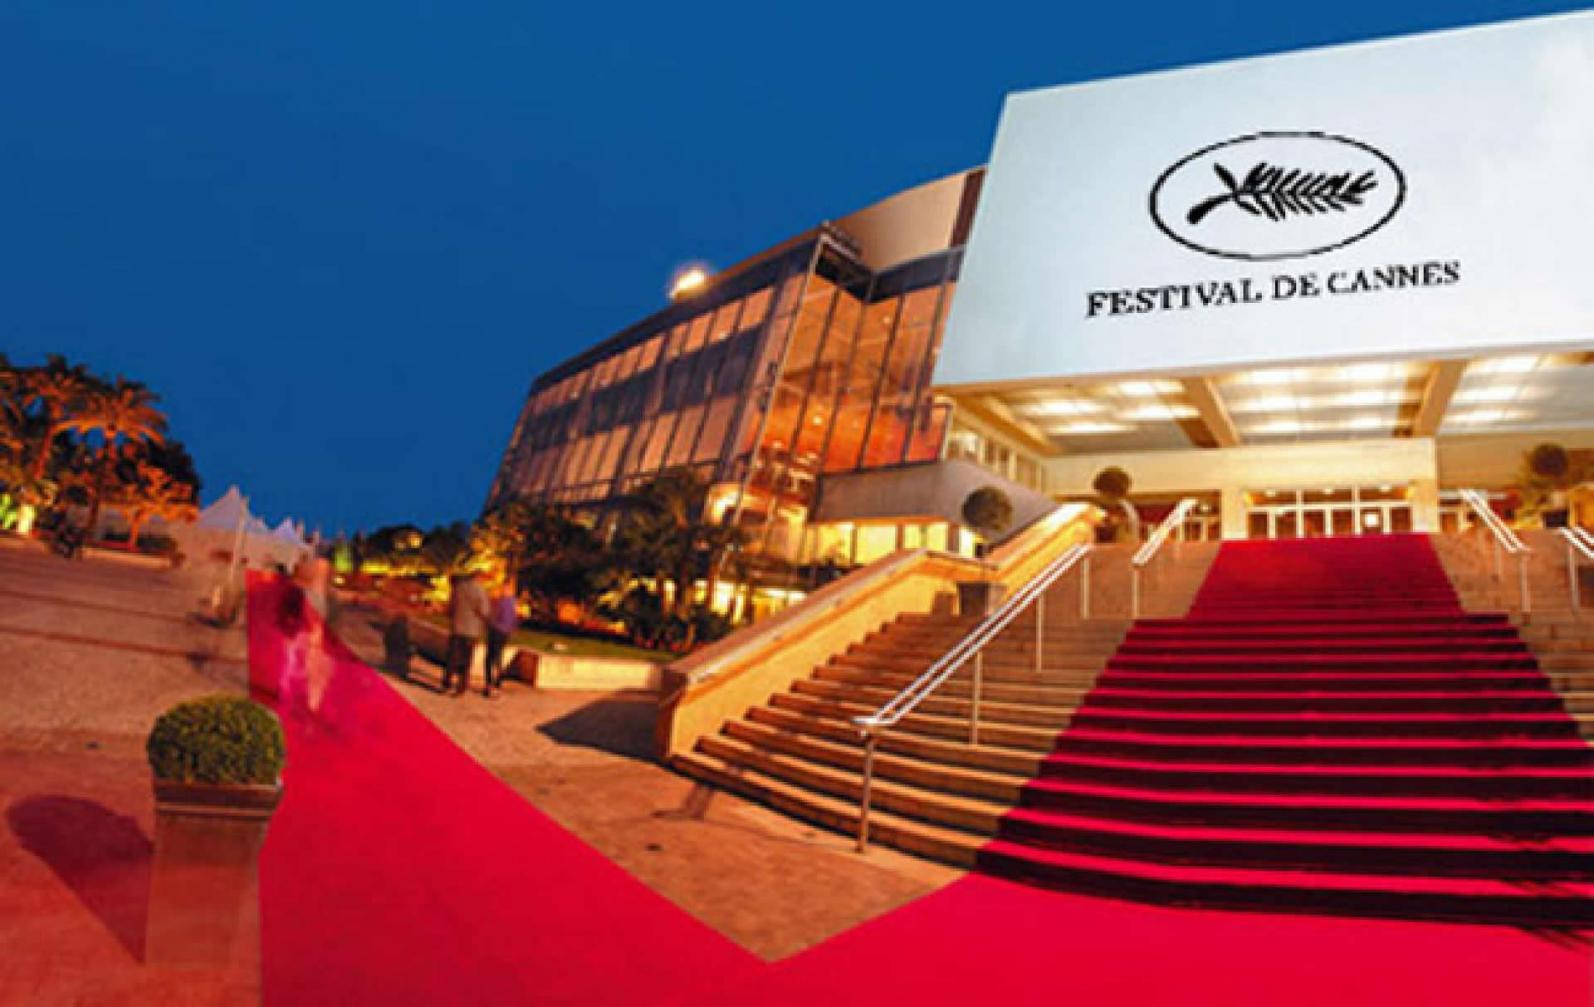 Palais des Festivals is 4 mins walk from the apartment